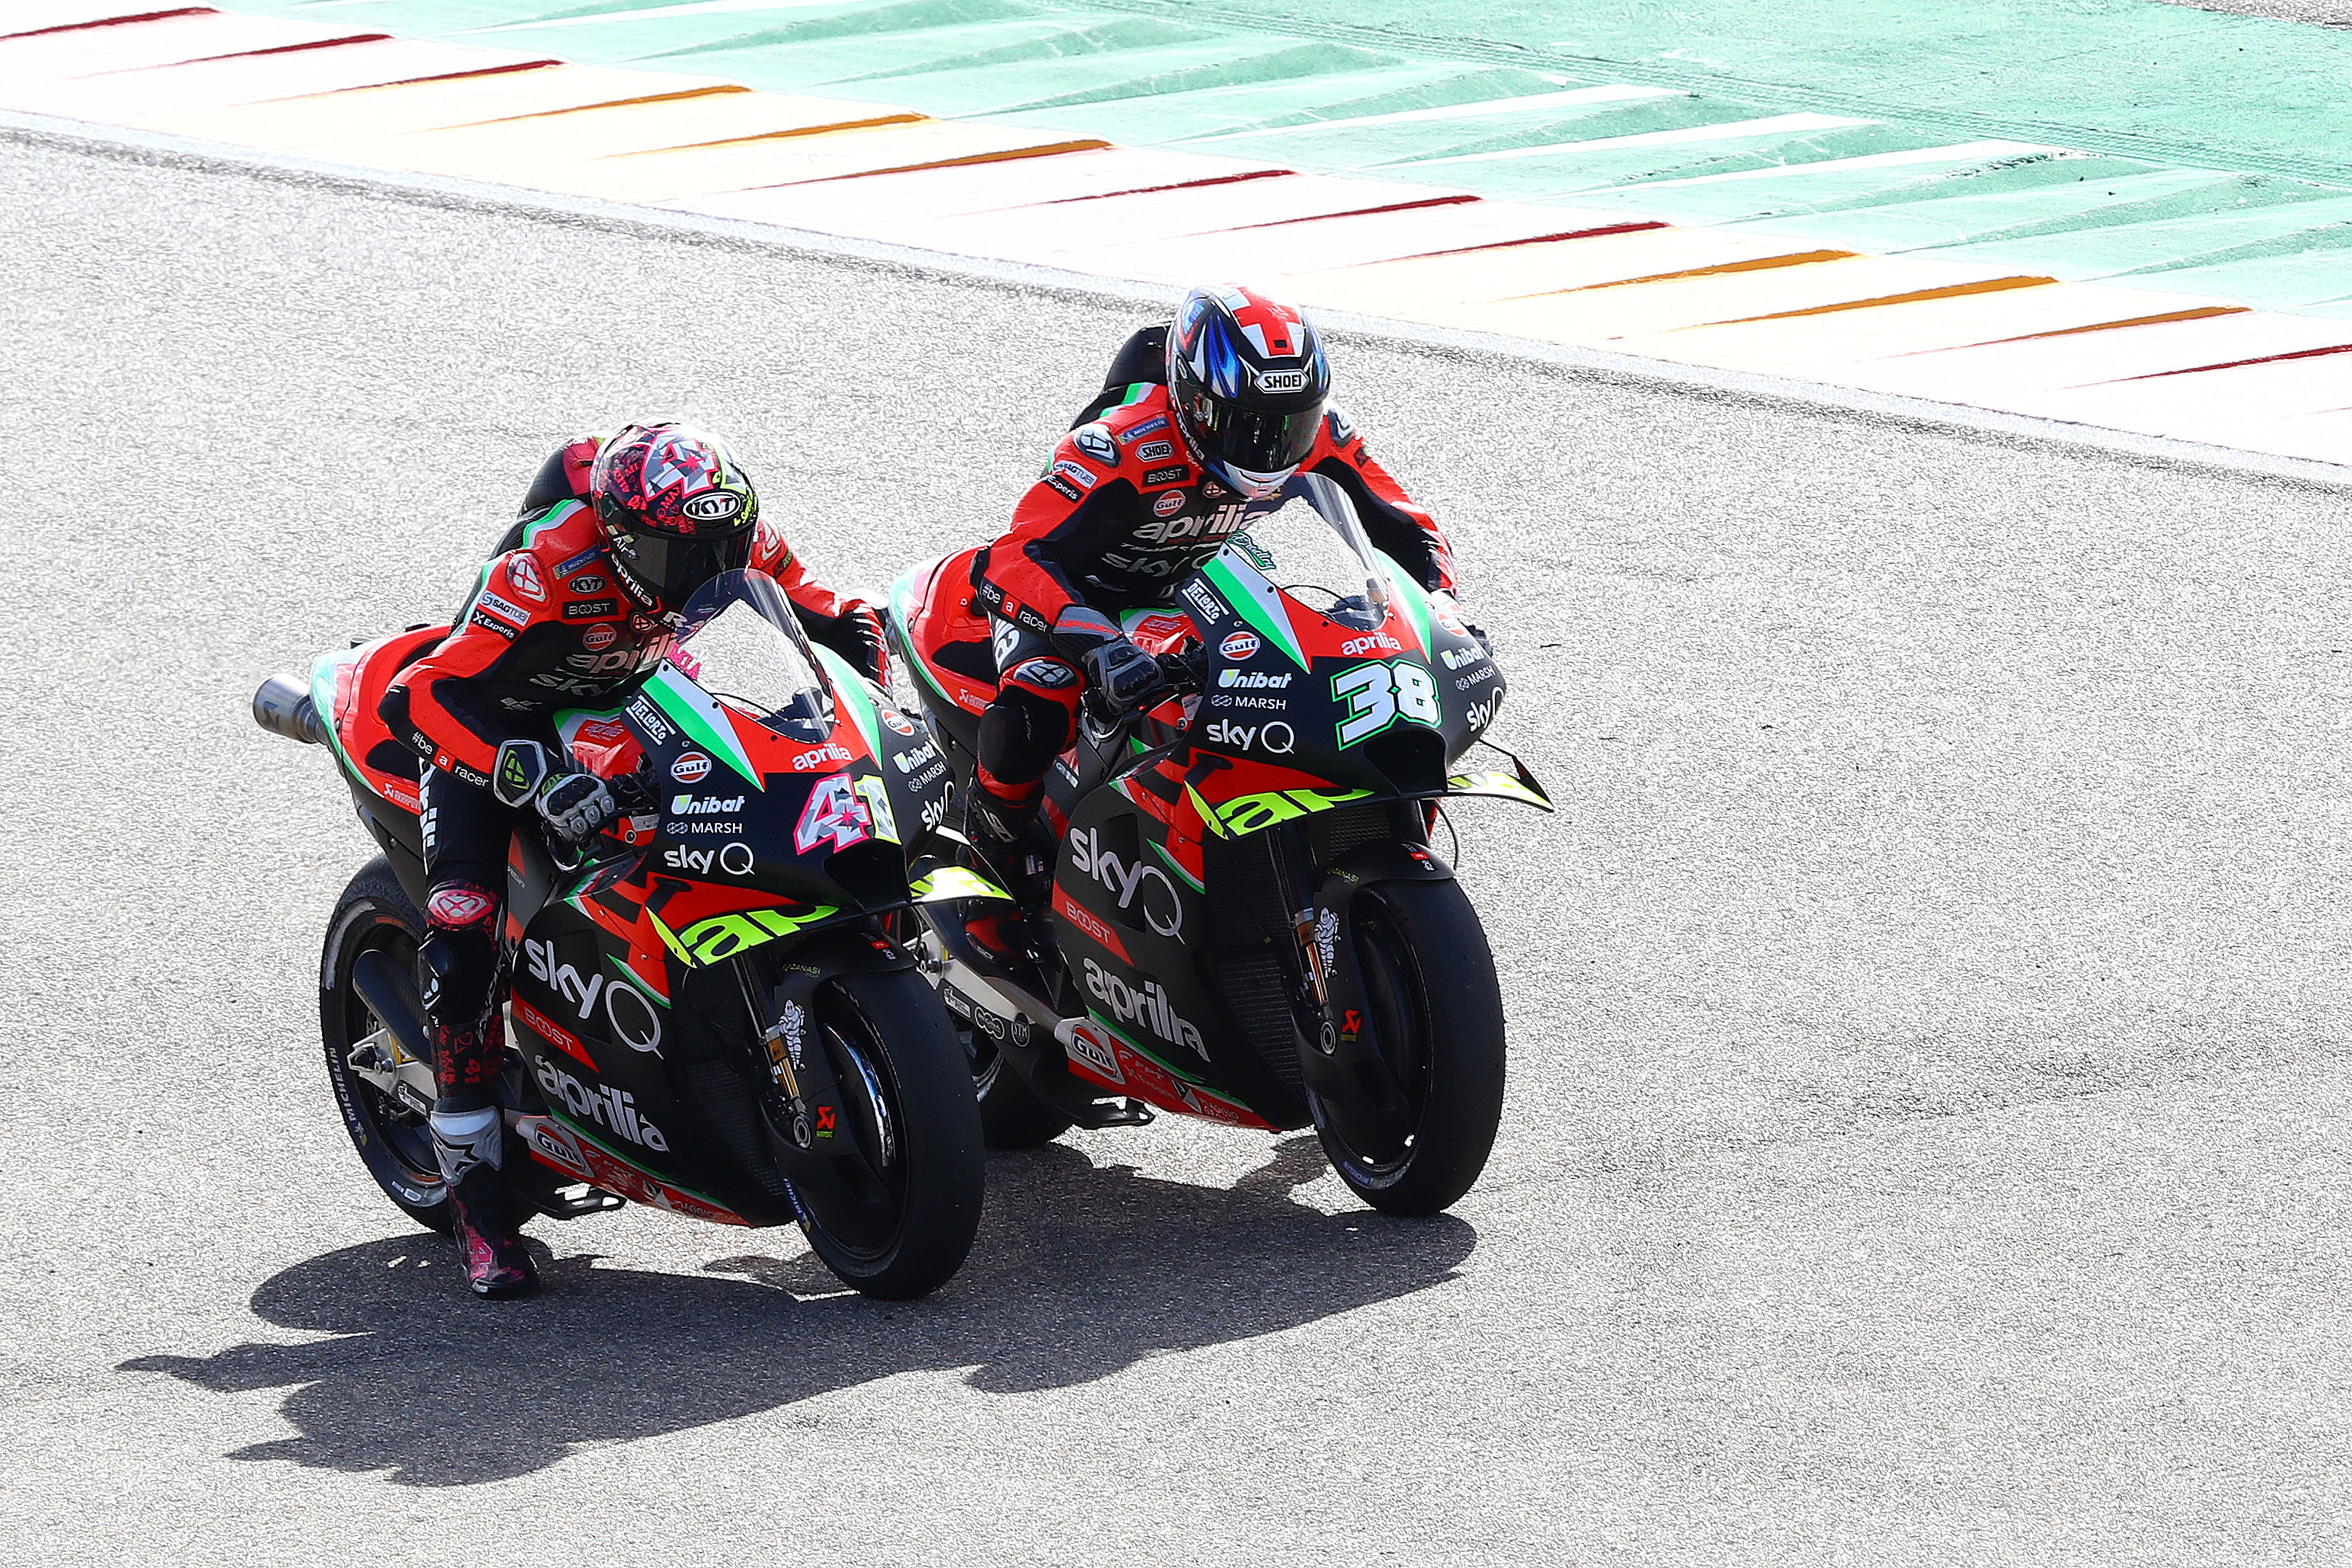 Aleix Espargaro and Bradley Smith, Aprilia, MotoGP